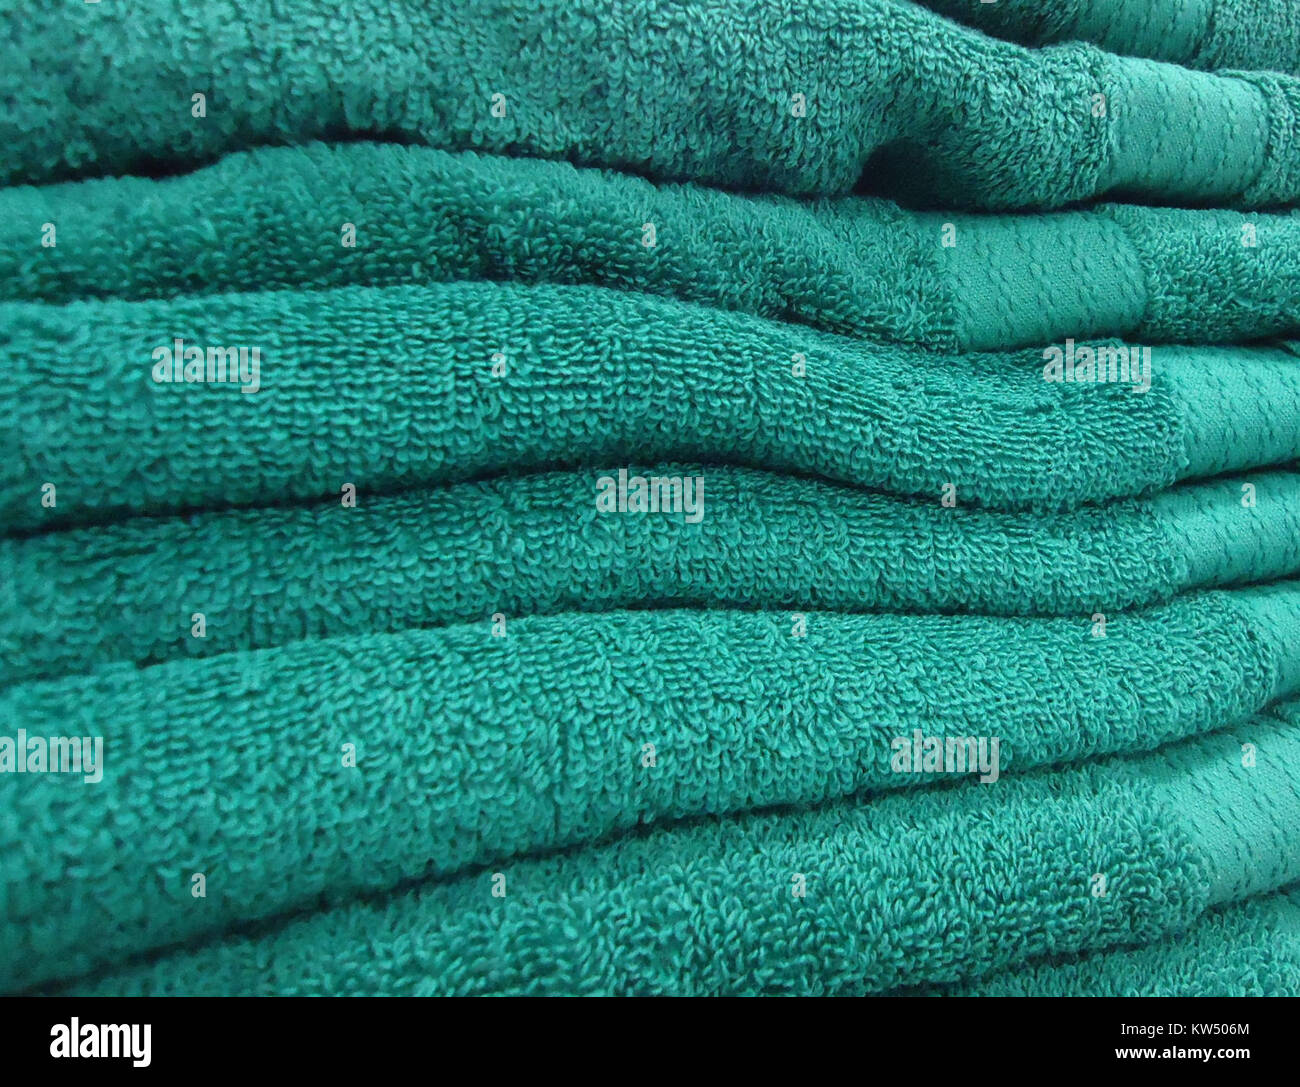 Bluegreen towels in a store - Stock Image